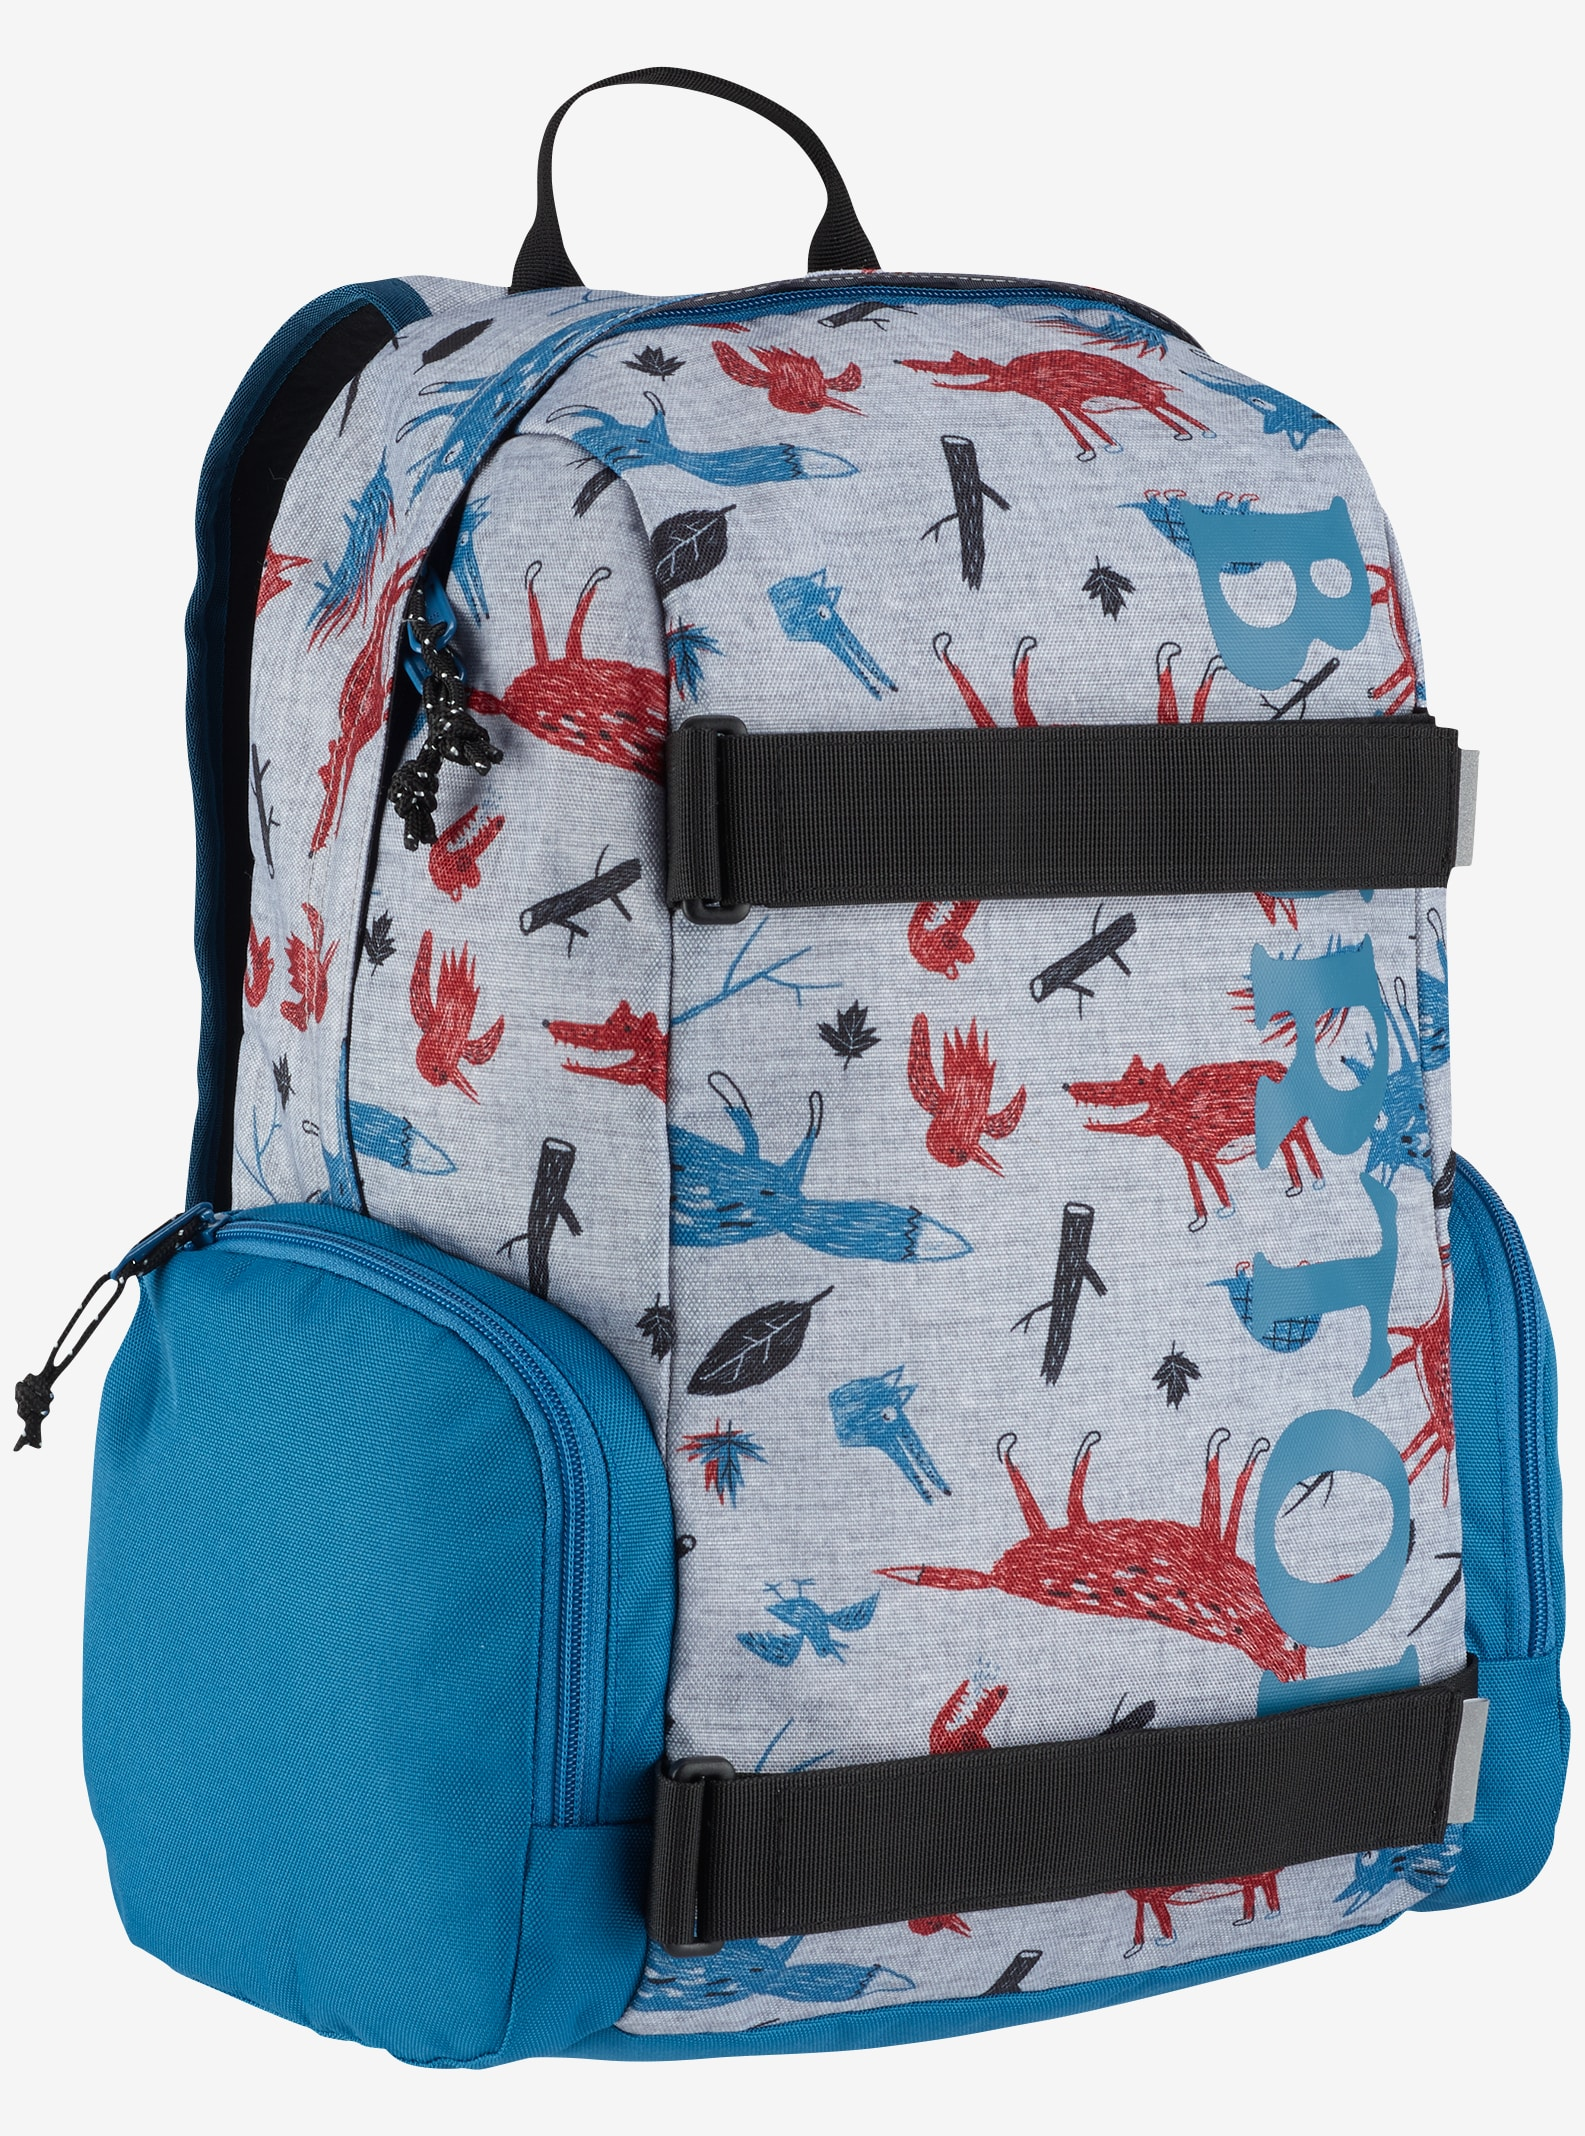 Burton Kids' Emphasis Backpack shown in Big Bad Wolf Print